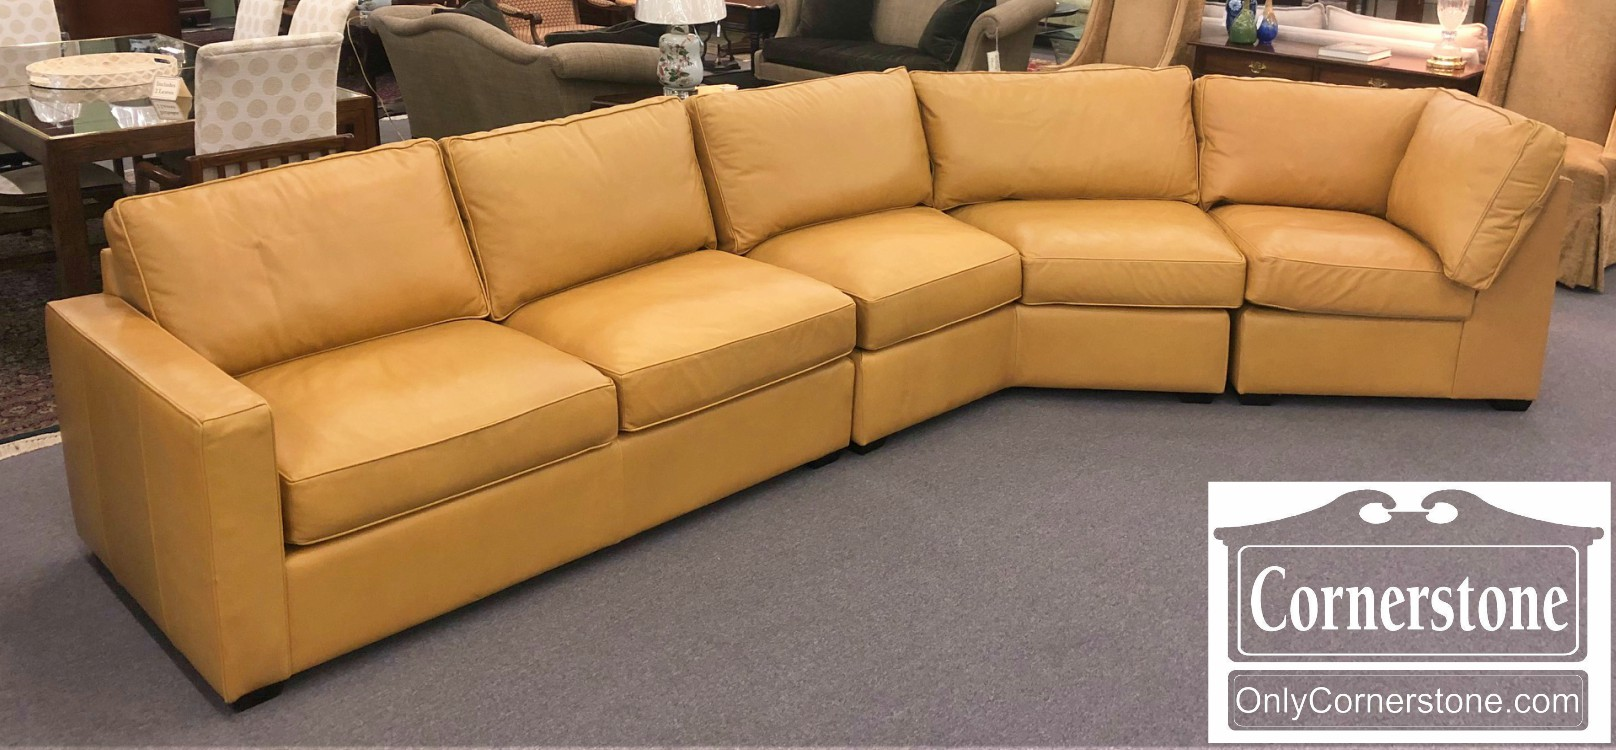 Stupendous Room Board Modern 3 Piece Tan Sectional Sofa Pabps2019 Chair Design Images Pabps2019Com